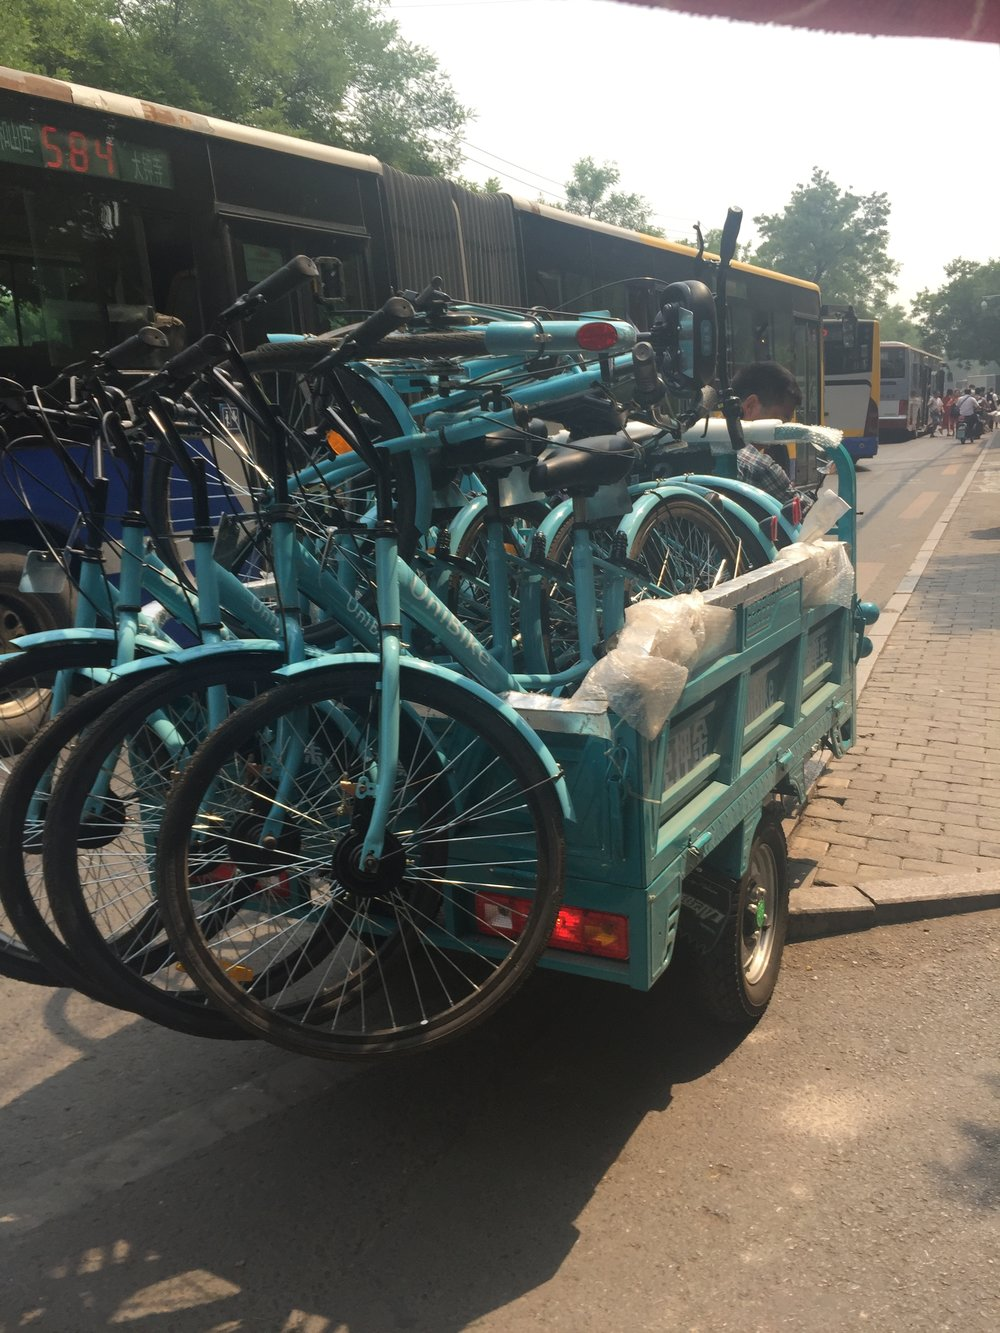 More bikes that are a part of the bike sharing initiative in Beijing.